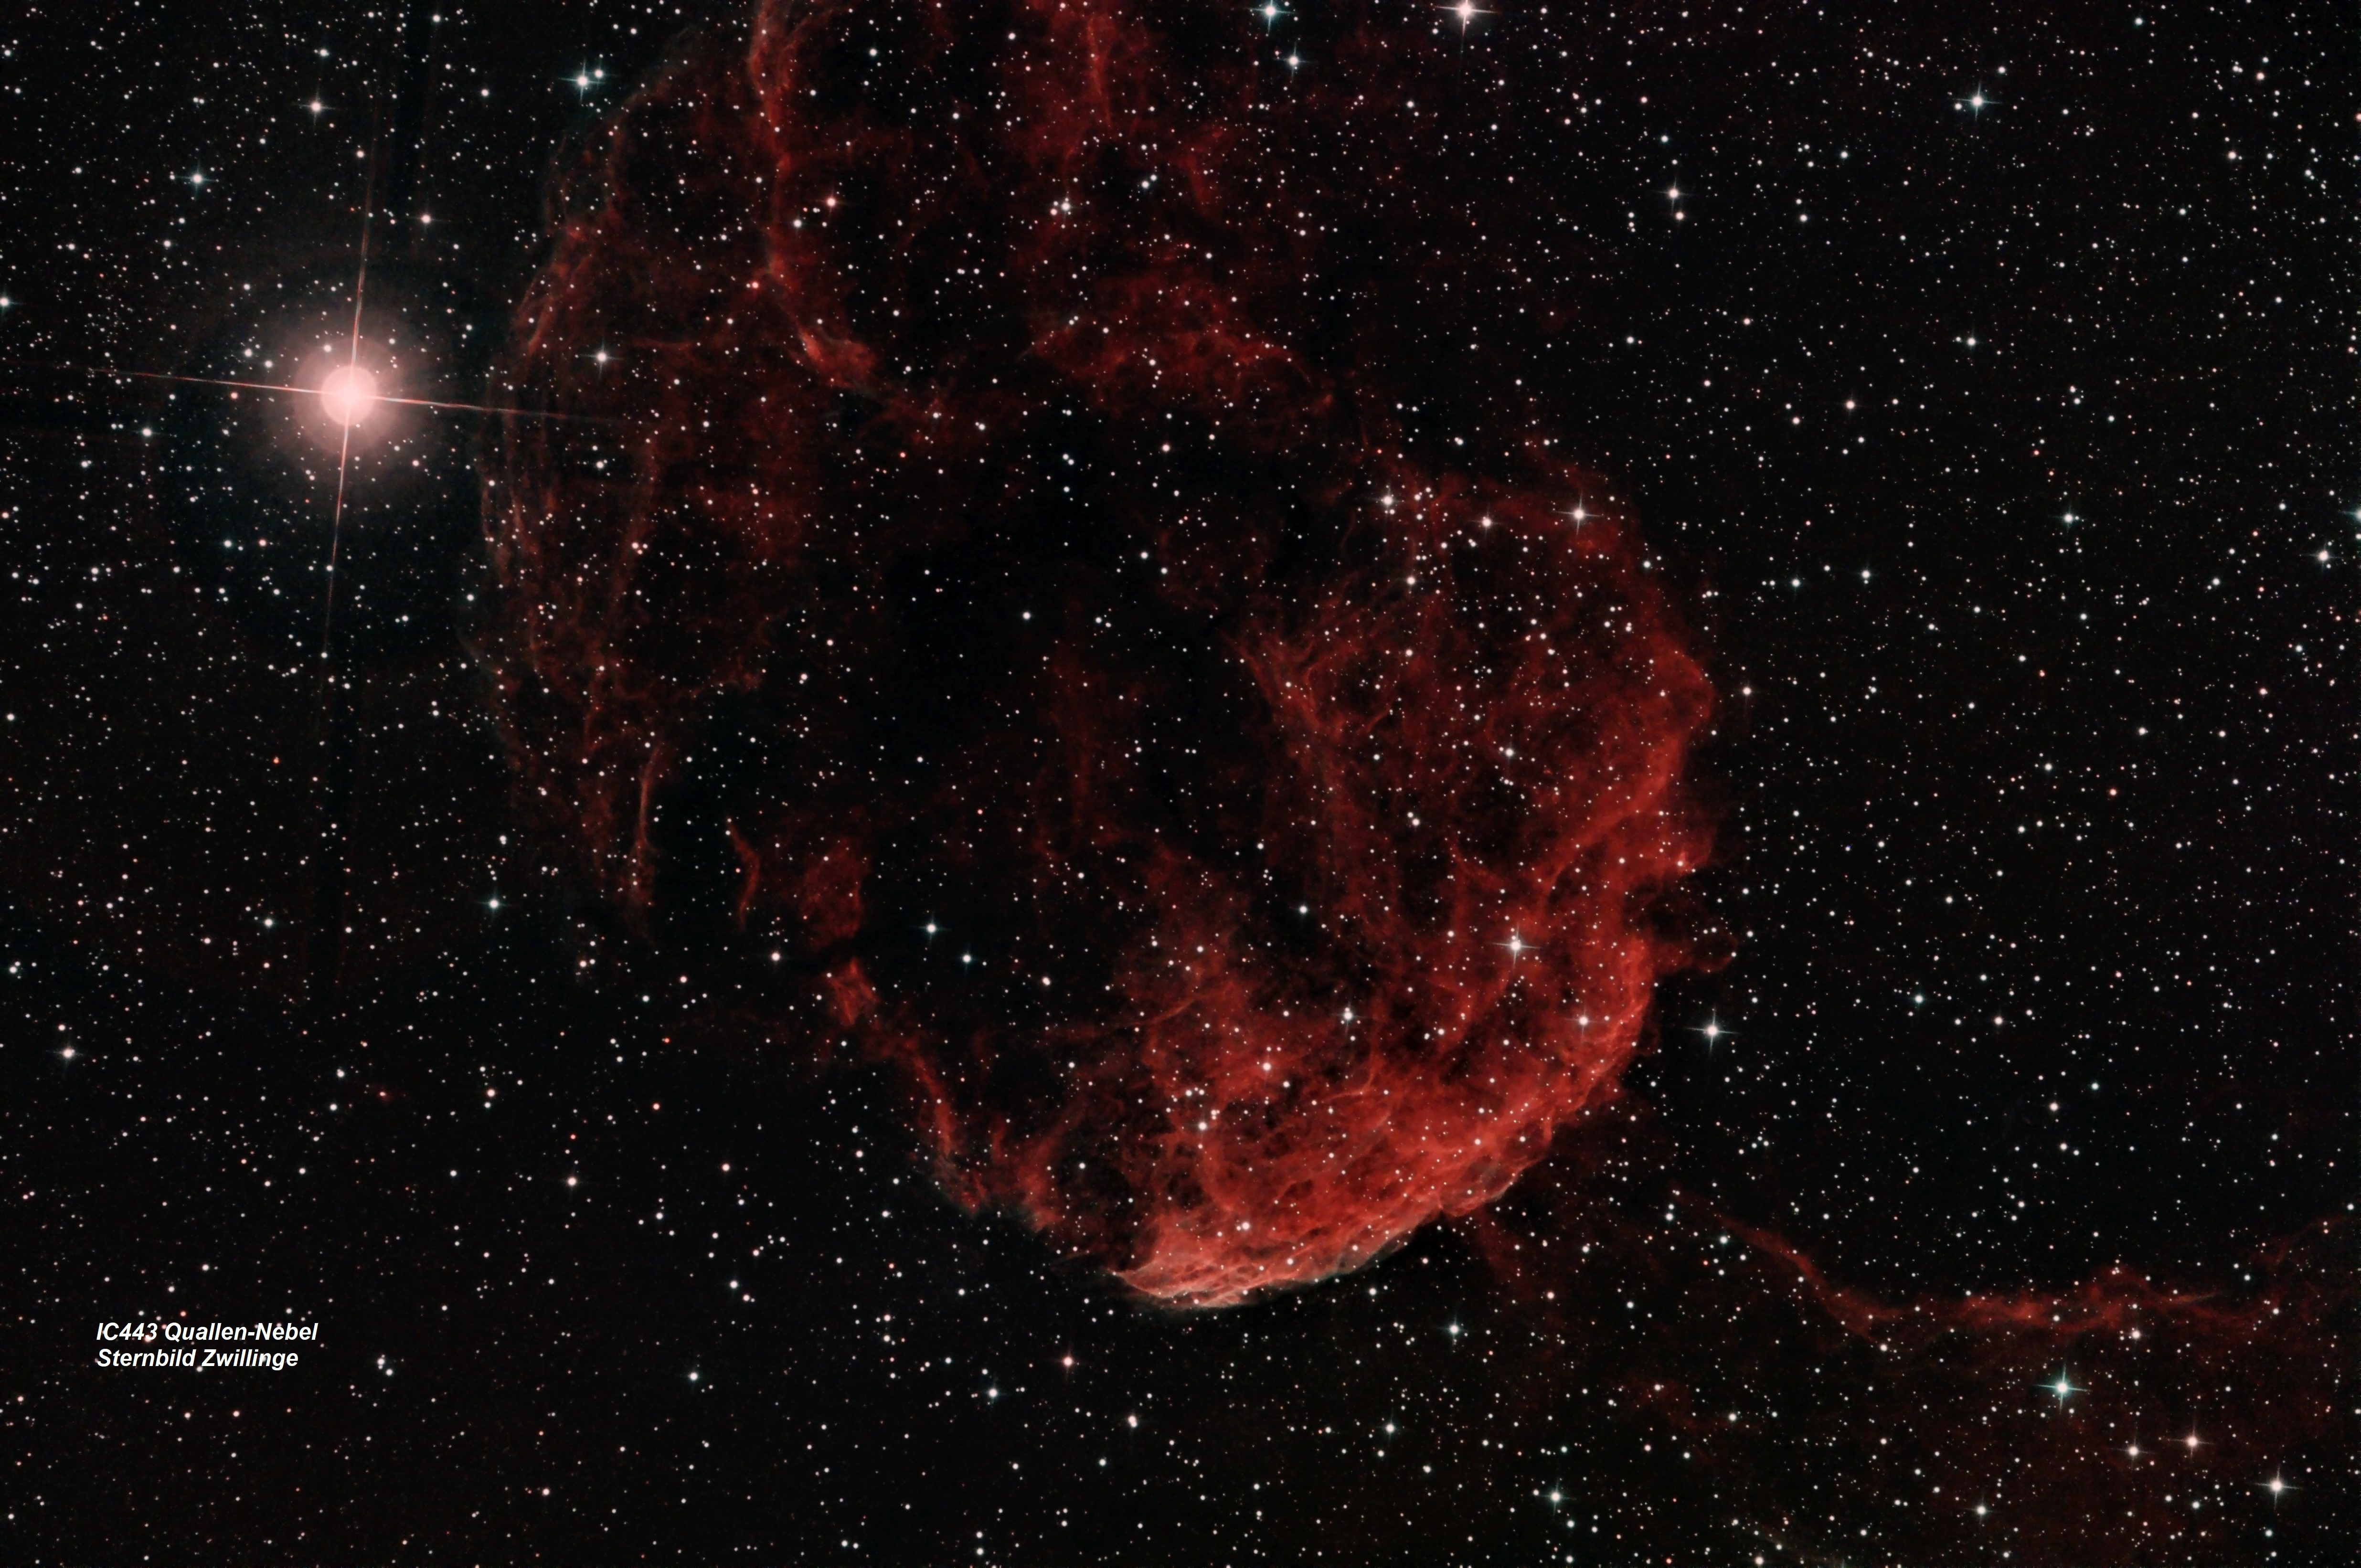 IC 443 Quallennebel